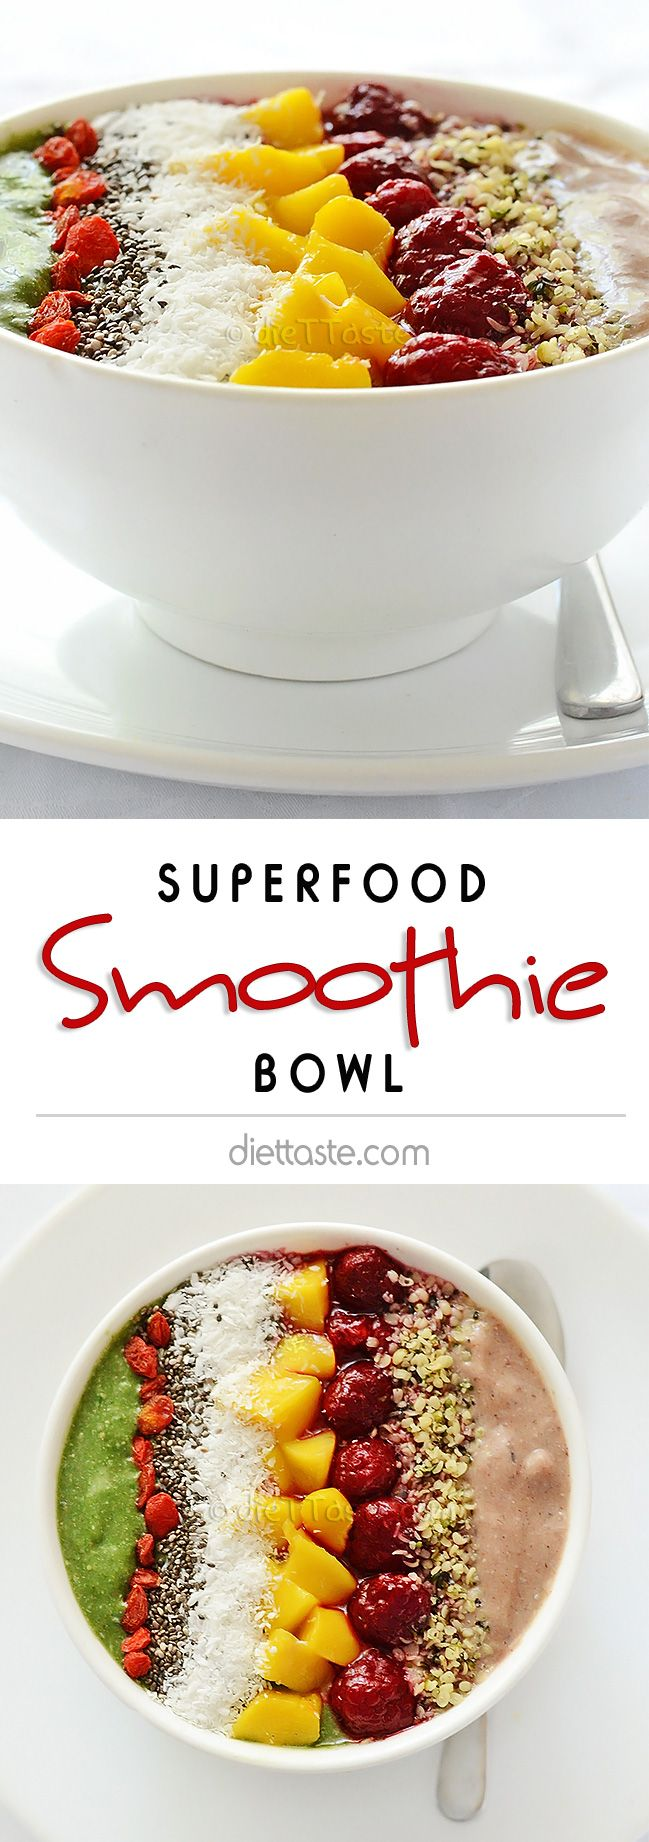 Superfood Smoothie Bowl - high nutrition smoothie for weight loss that can be eaten with a spoon - diettaste.com